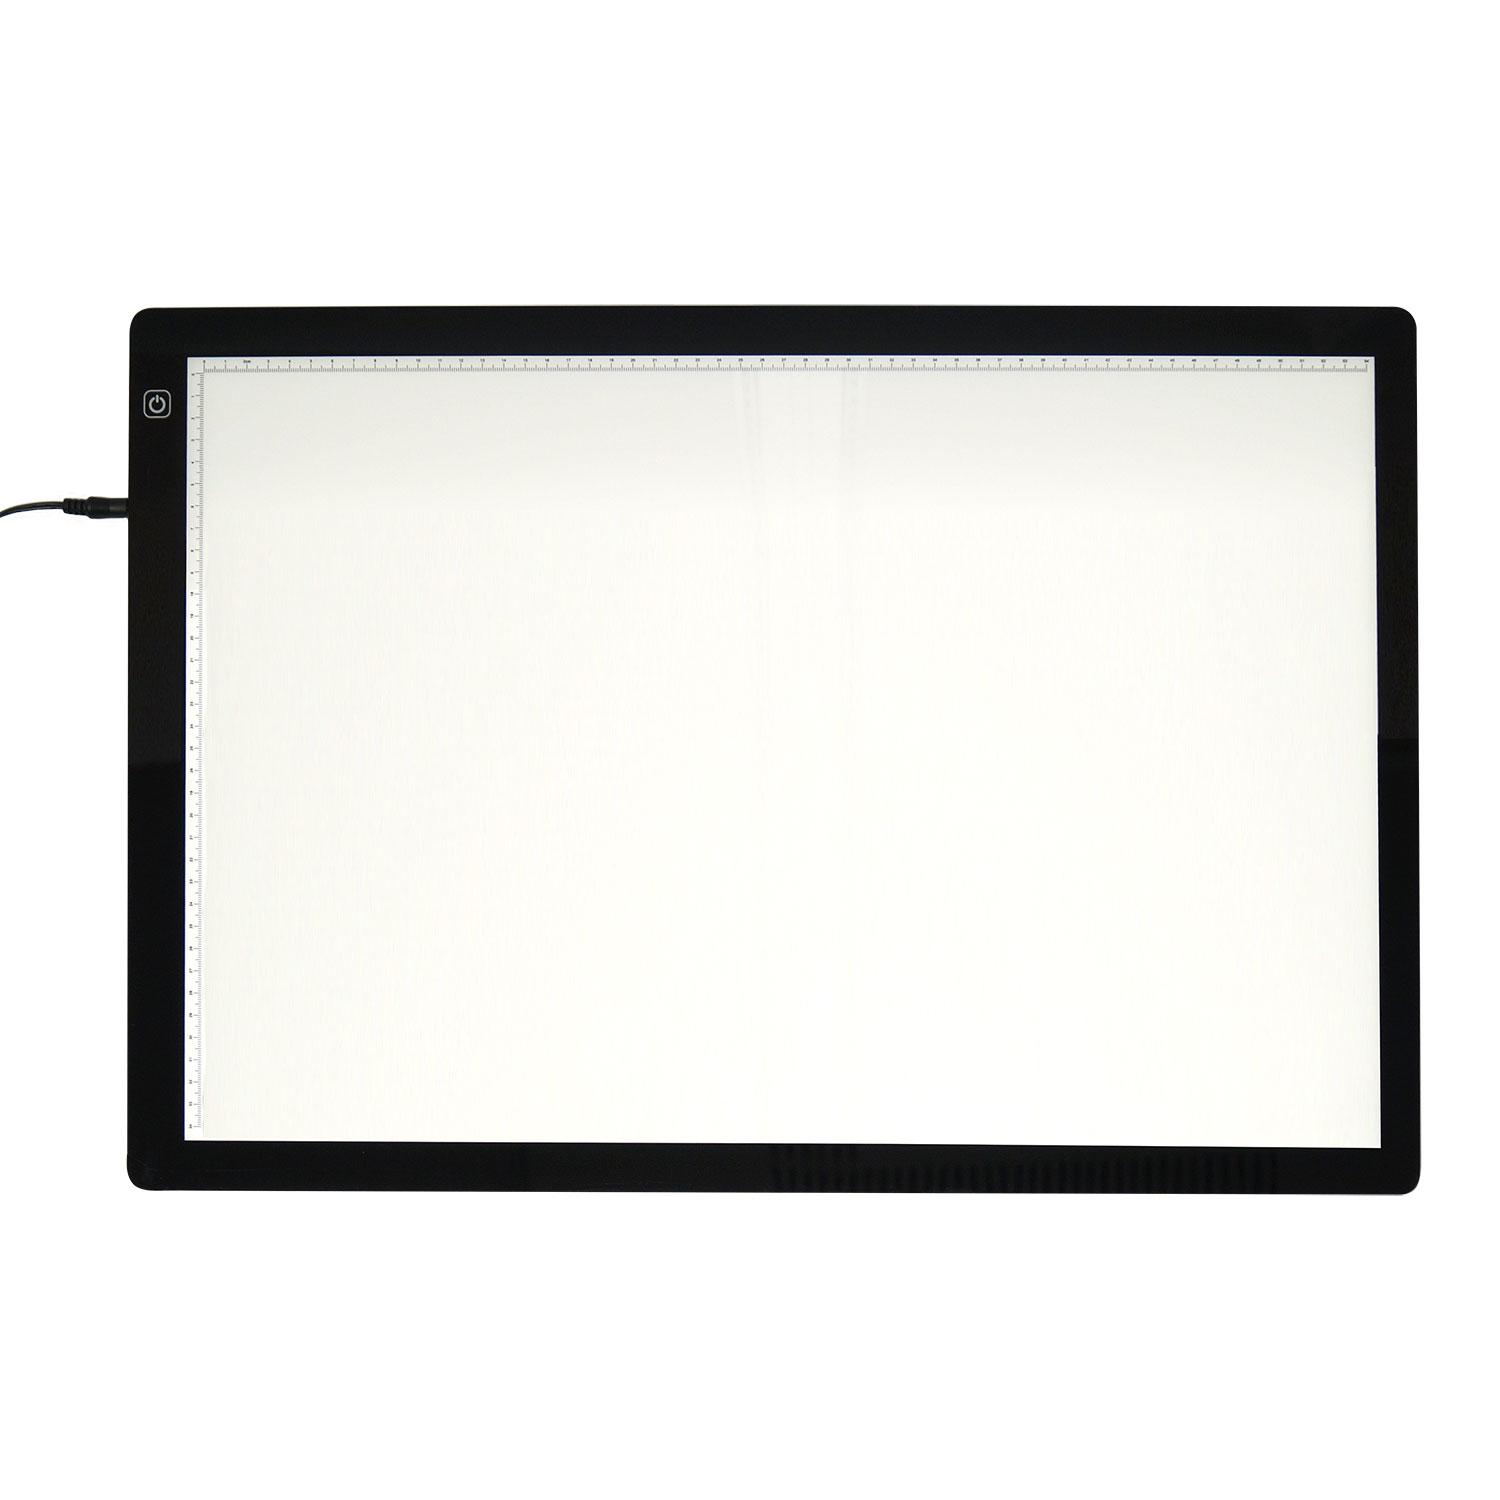 Studio Pro LED Light Pad